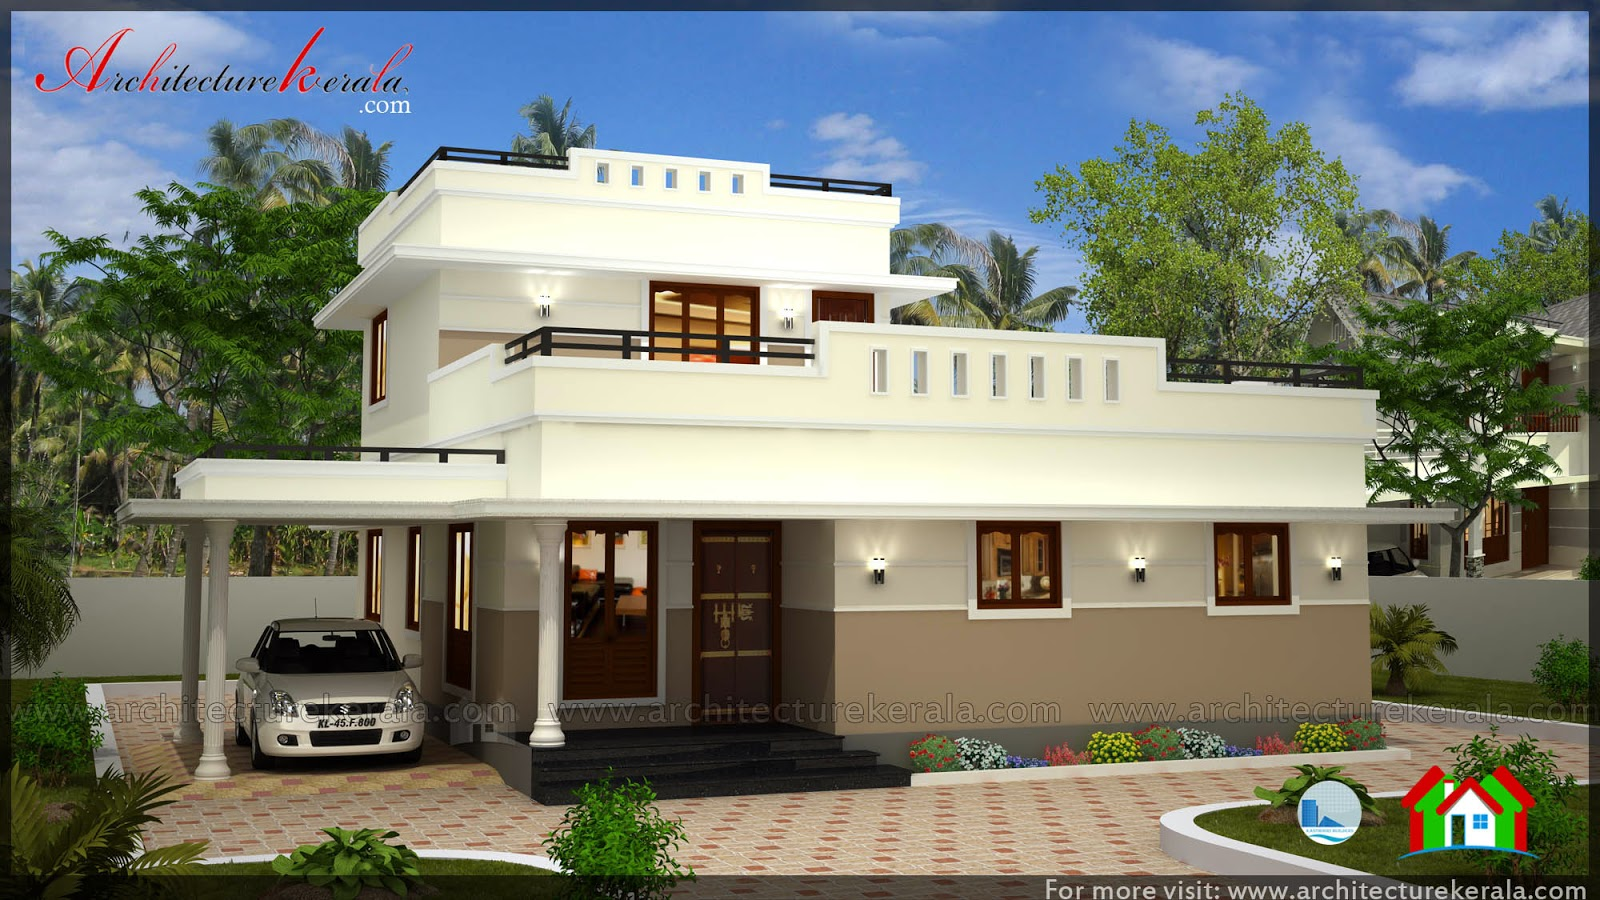 Low cost 3 bedroom kerala house plan with elevation free for 3 bedroom low cost house plans